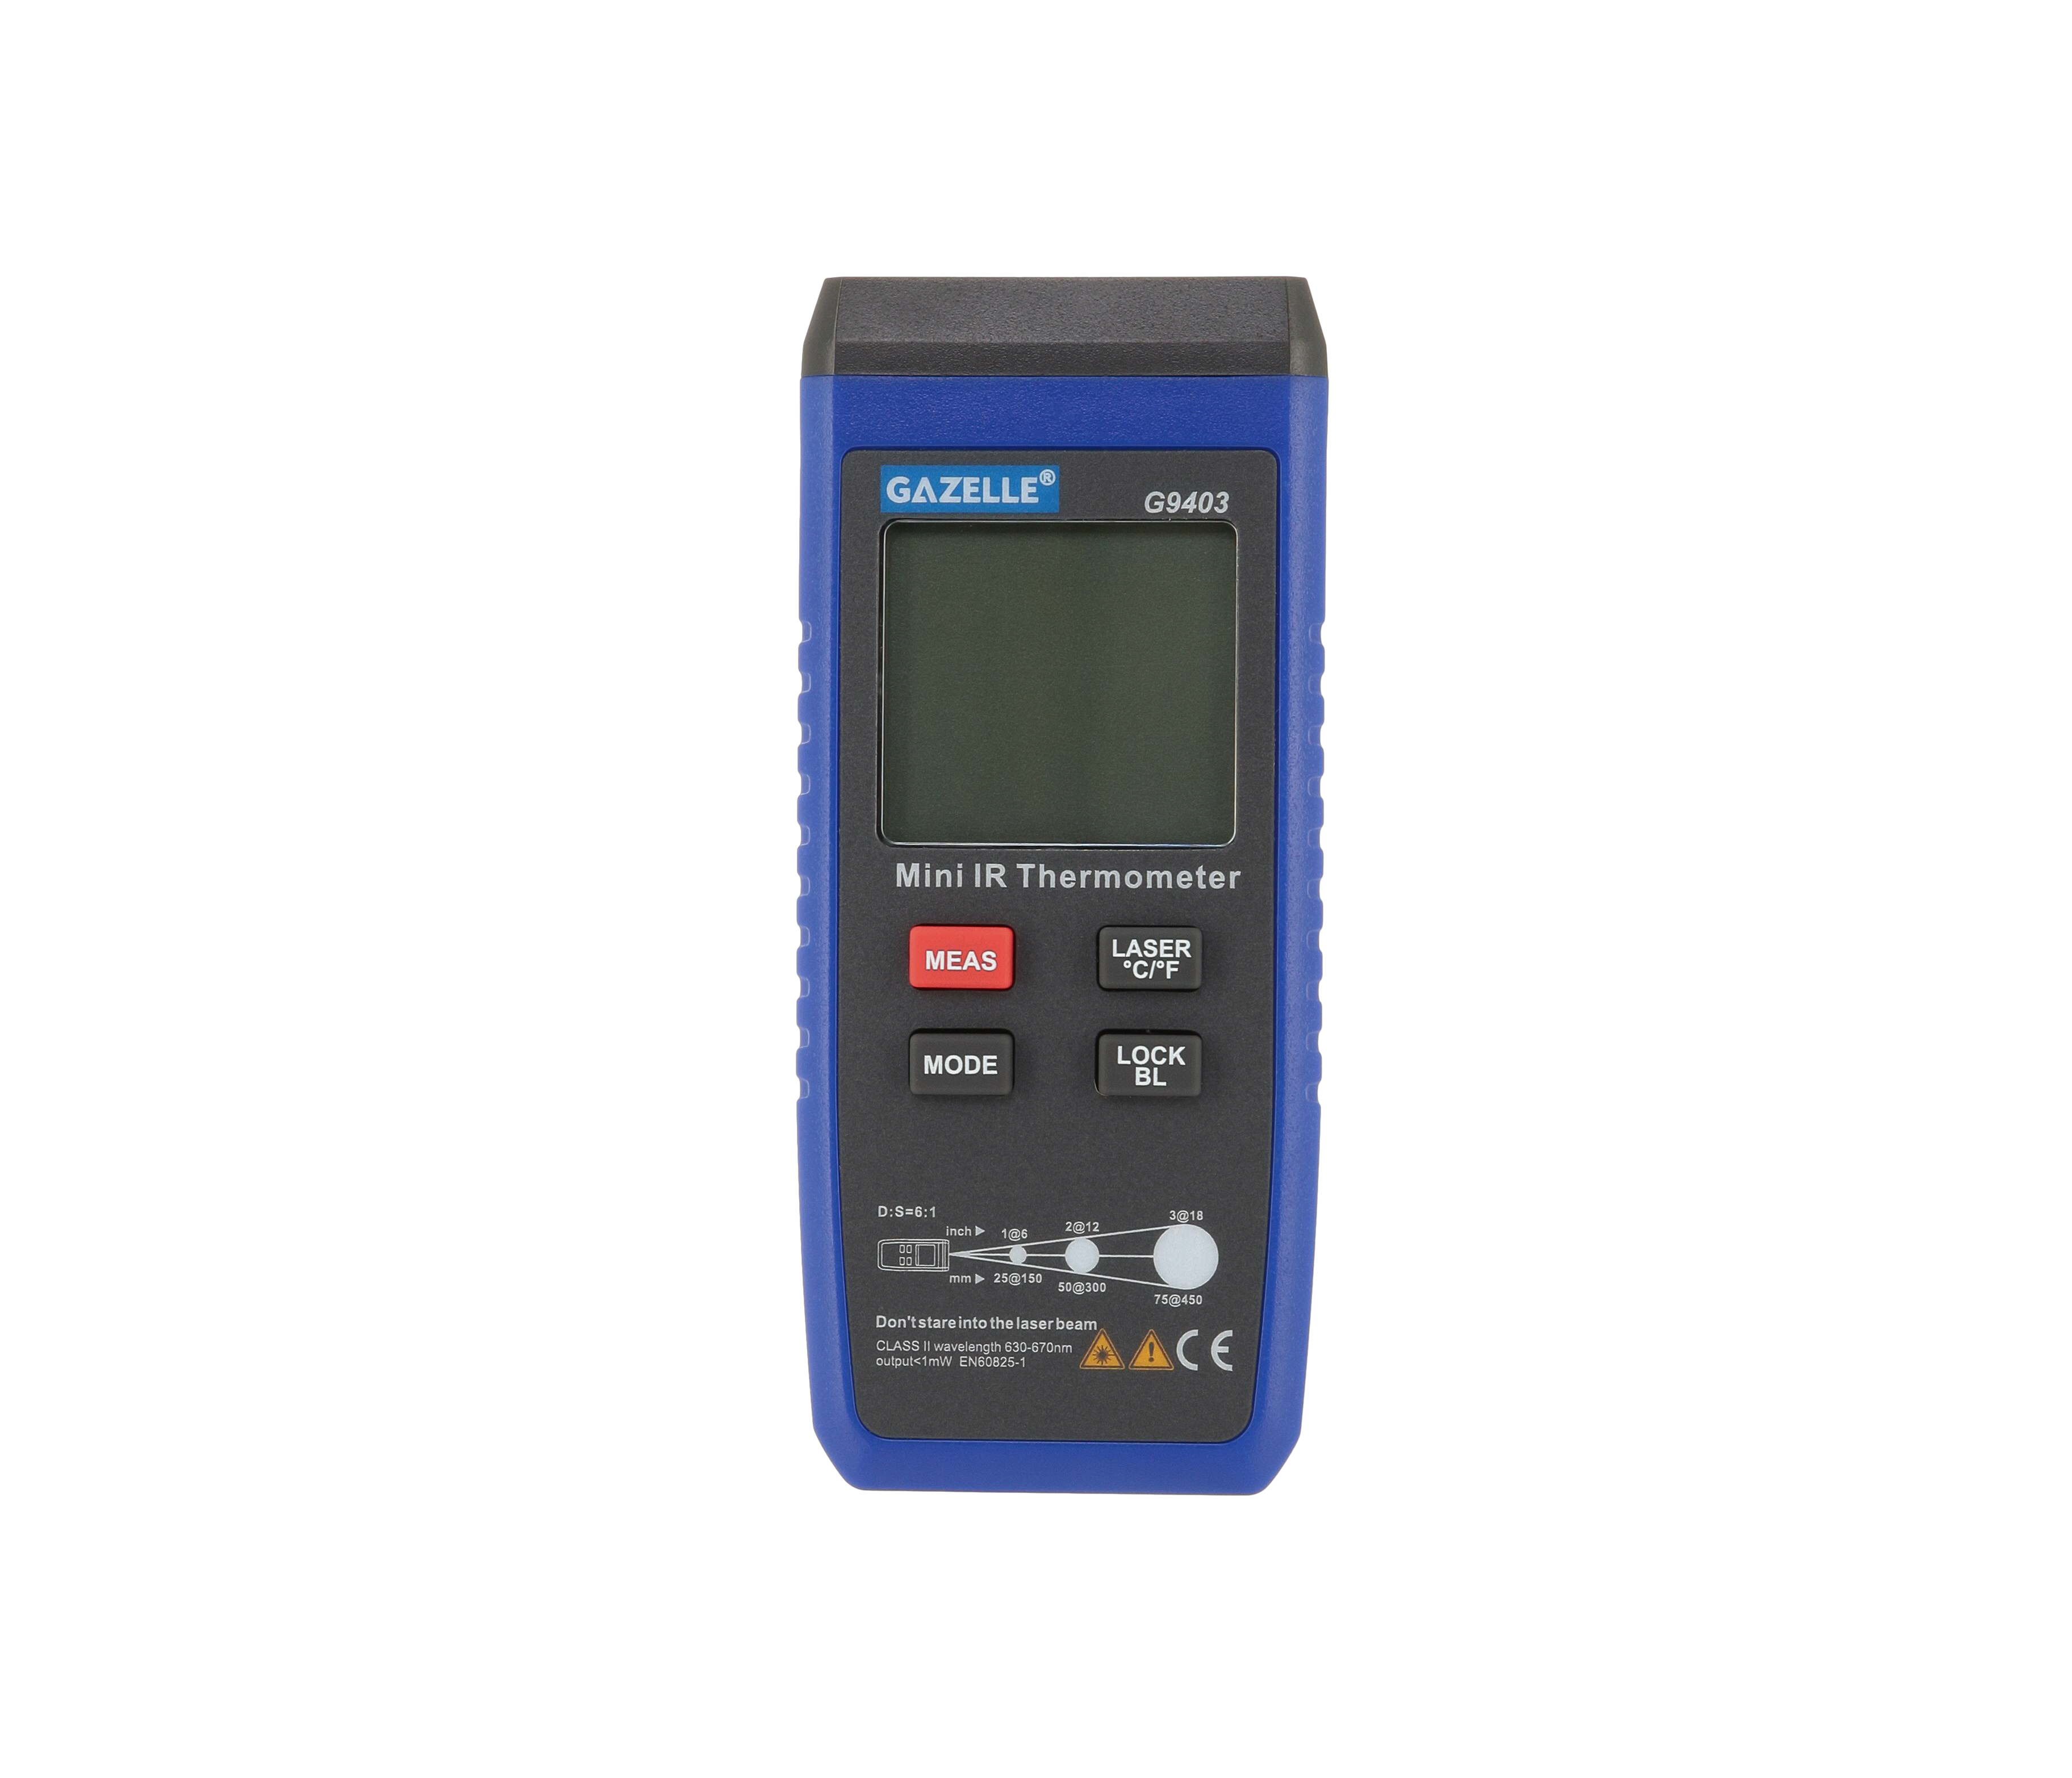 GAZELLE Mini Infrared Thermometer in Dubai,UAE - G9403 from AABTools